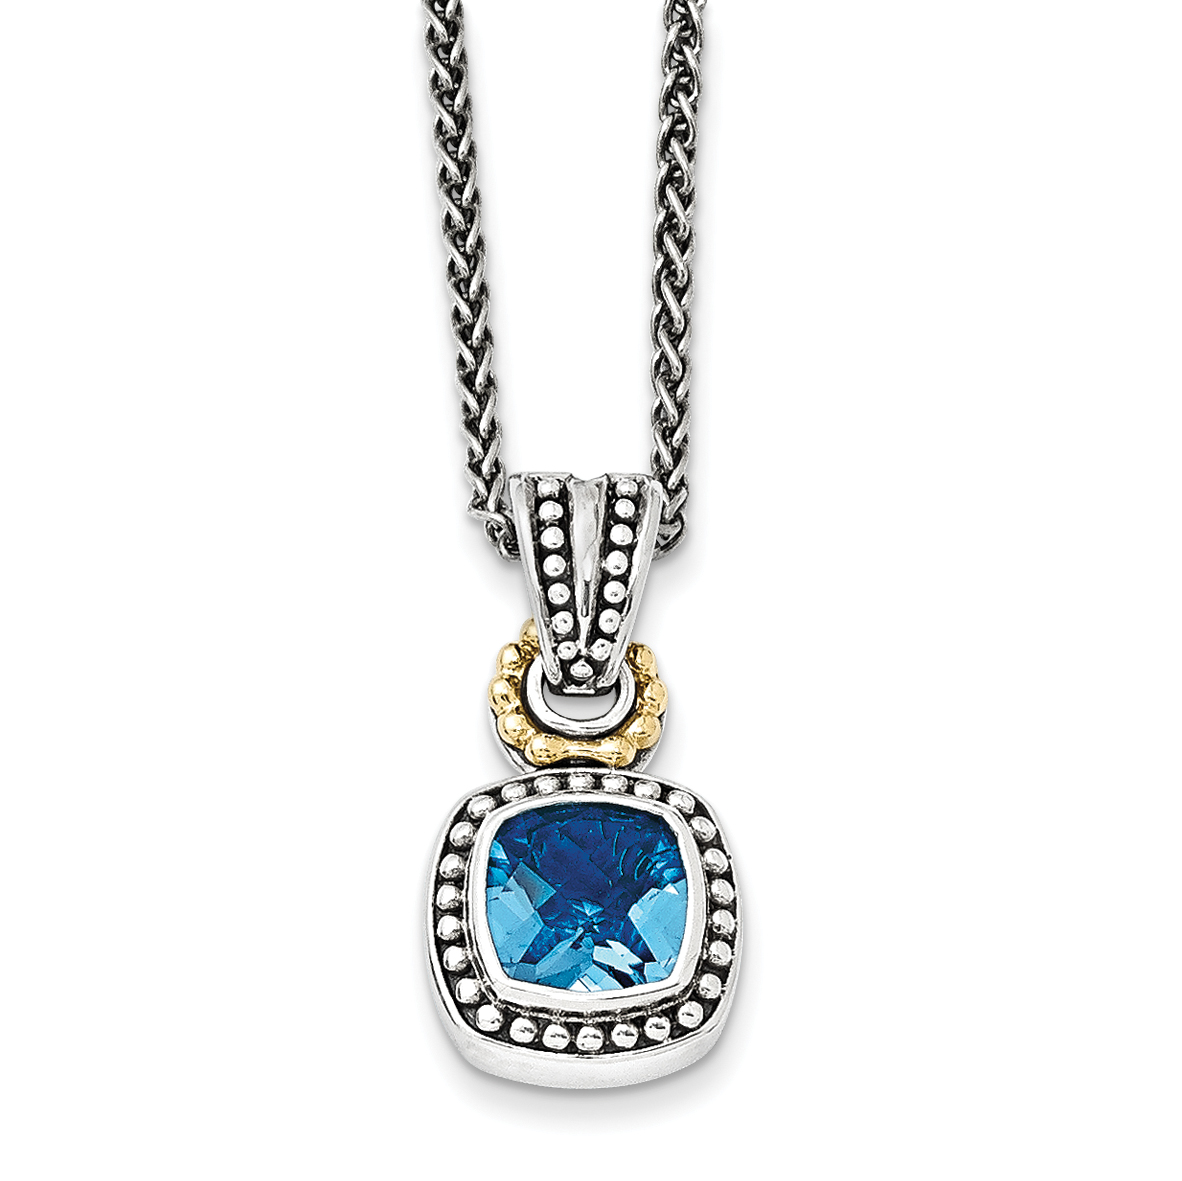 Roy Rose Jewelry Sterling Silver and 14K Gold Antiqued Blue Topaz Necklace ~ Length 18'' inches by